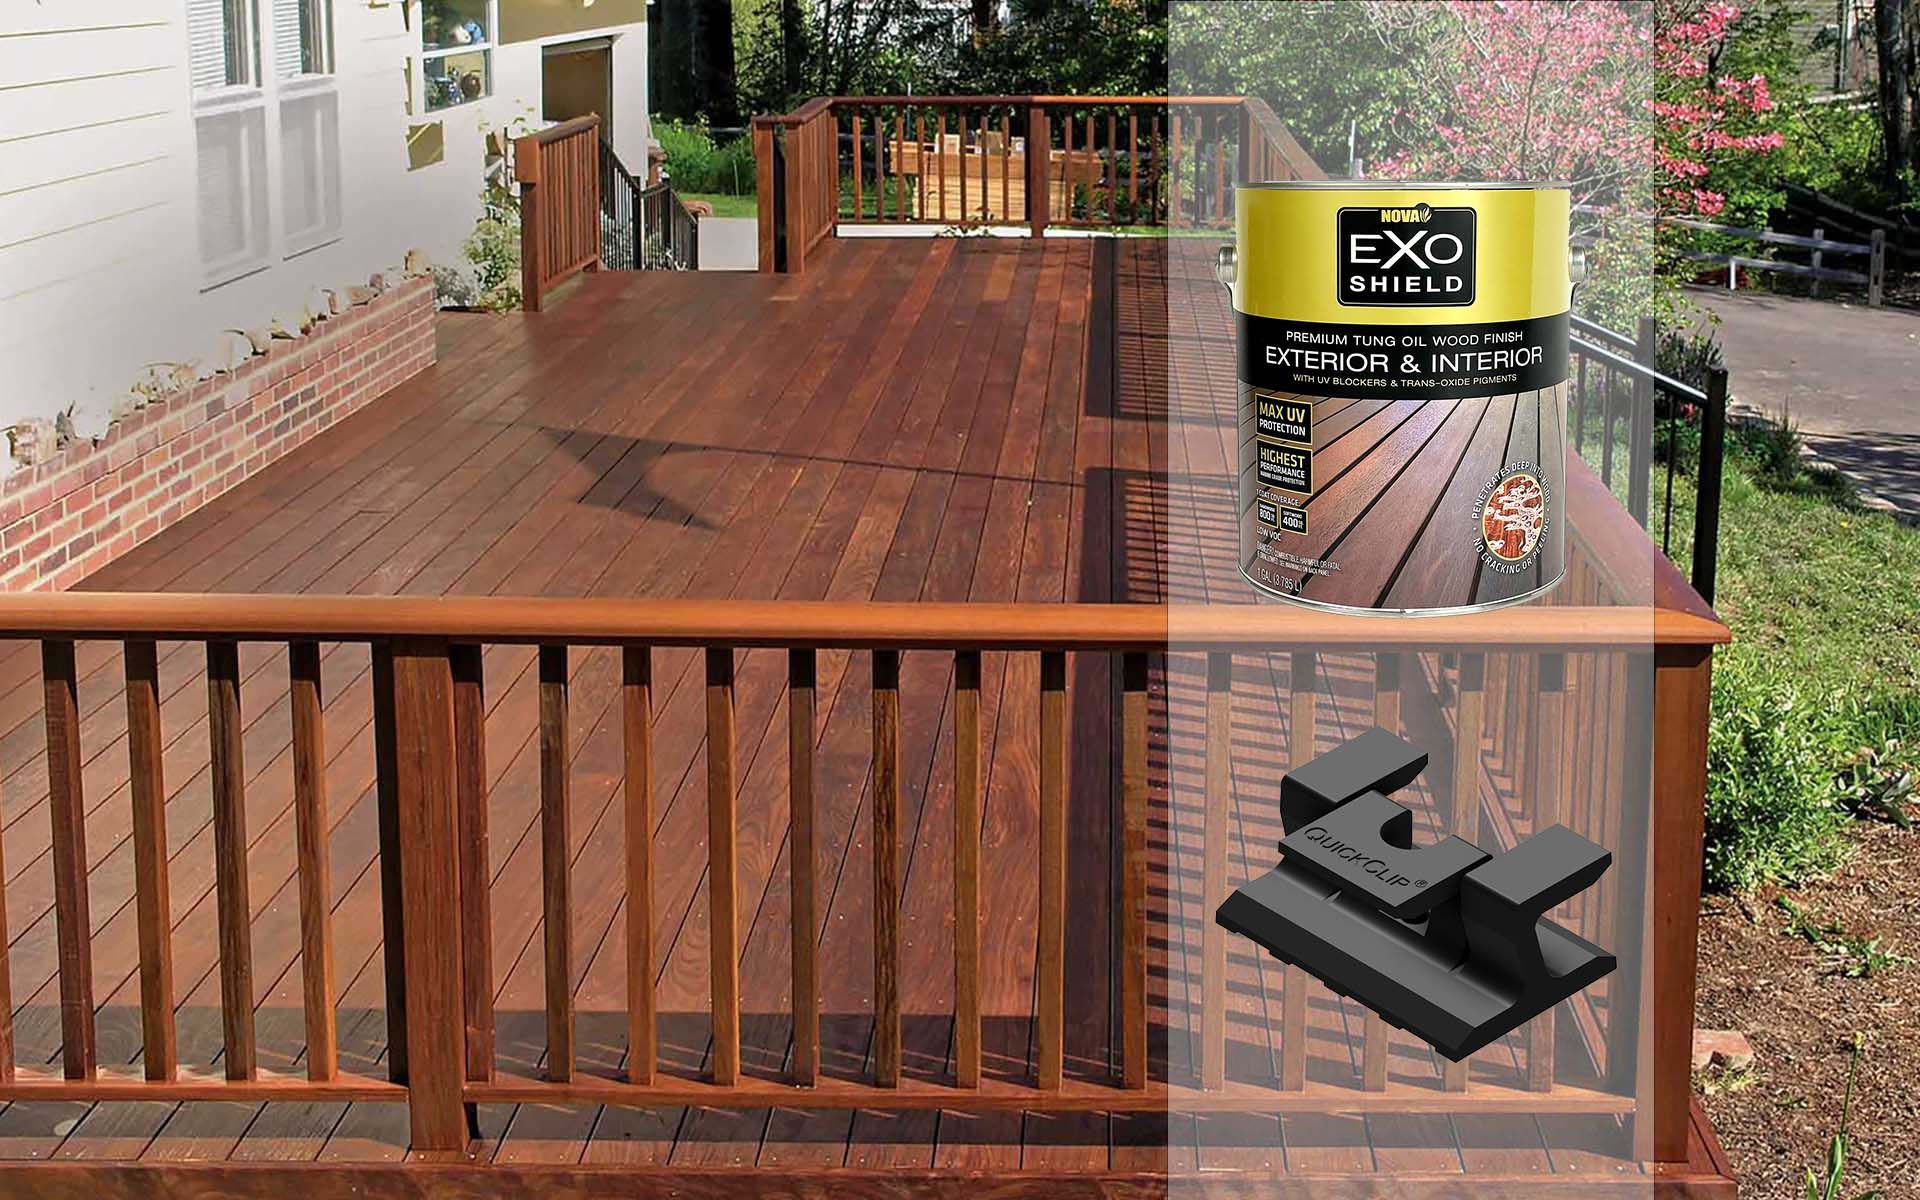 Hardwood_Decking_ipe-deck-with-oil-stain-hardwood-railing.jpg